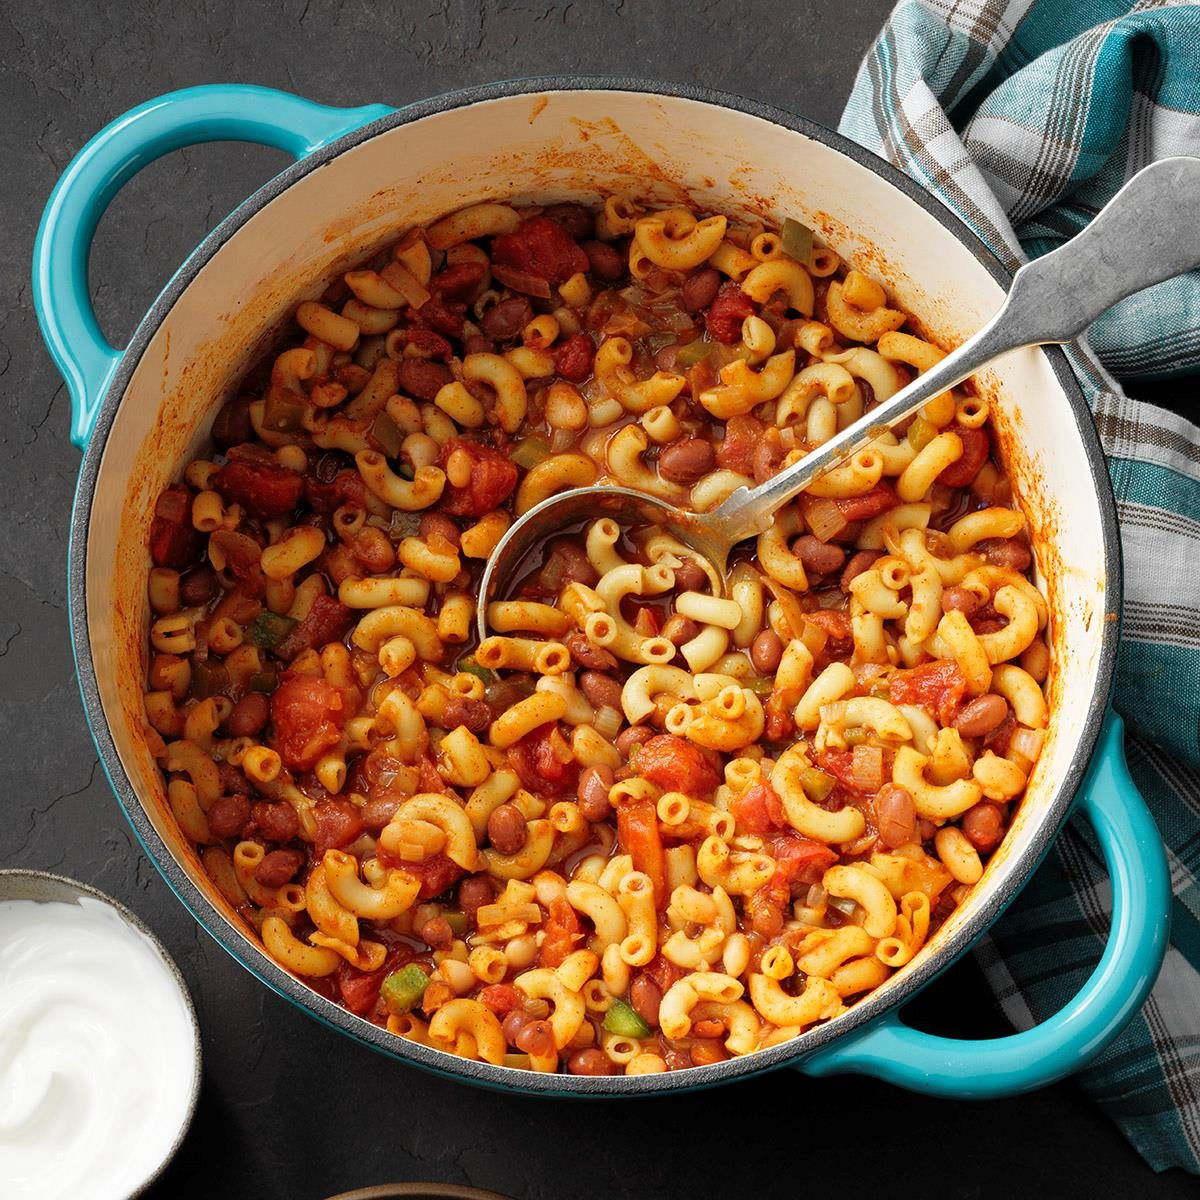 Meatless Chili Mac